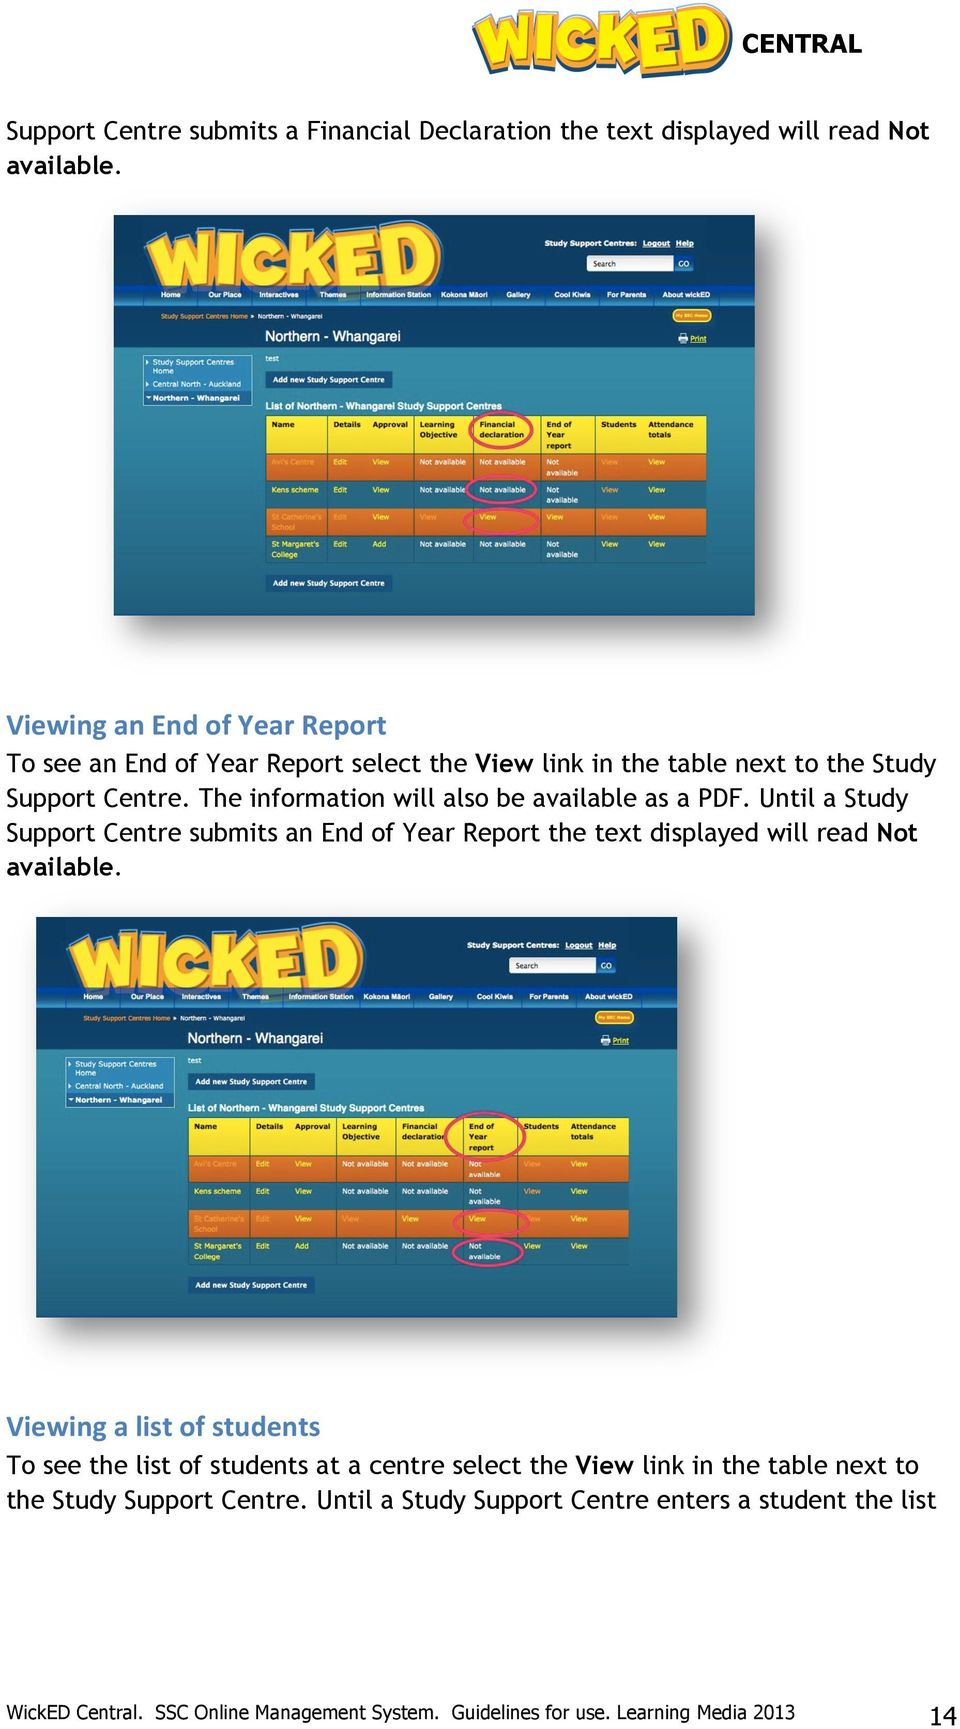 wicked Central an online management system for Study Support Centres